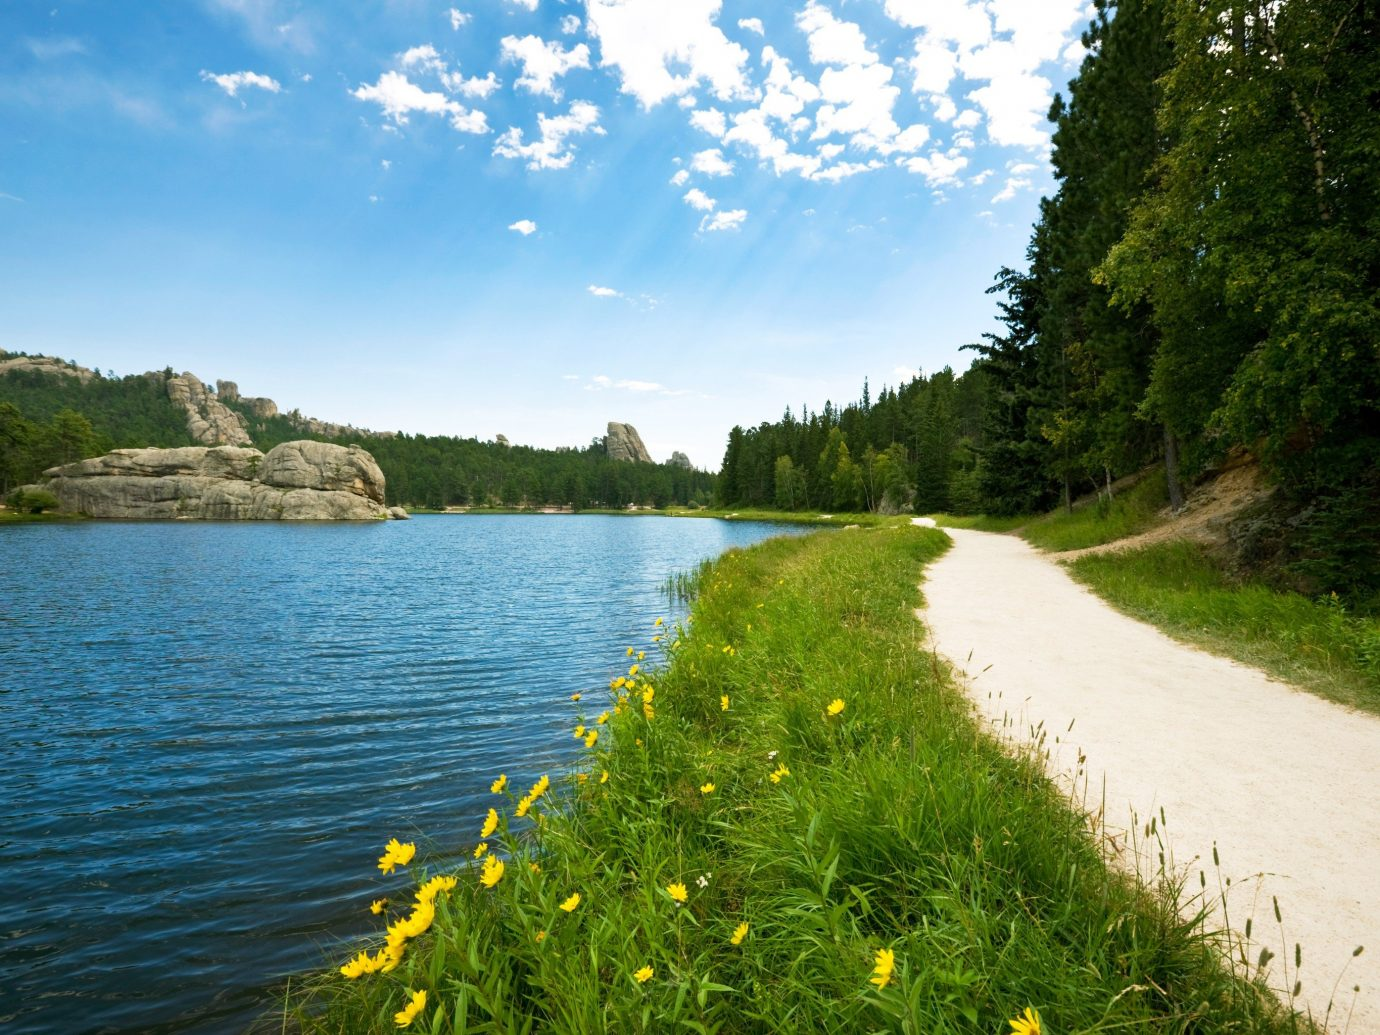 Trip Ideas outdoor water sky tree grass Nature body of water landform geographical feature River Lake reservoir loch rural area meadow landscape waterway mountain flower surrounded hillside